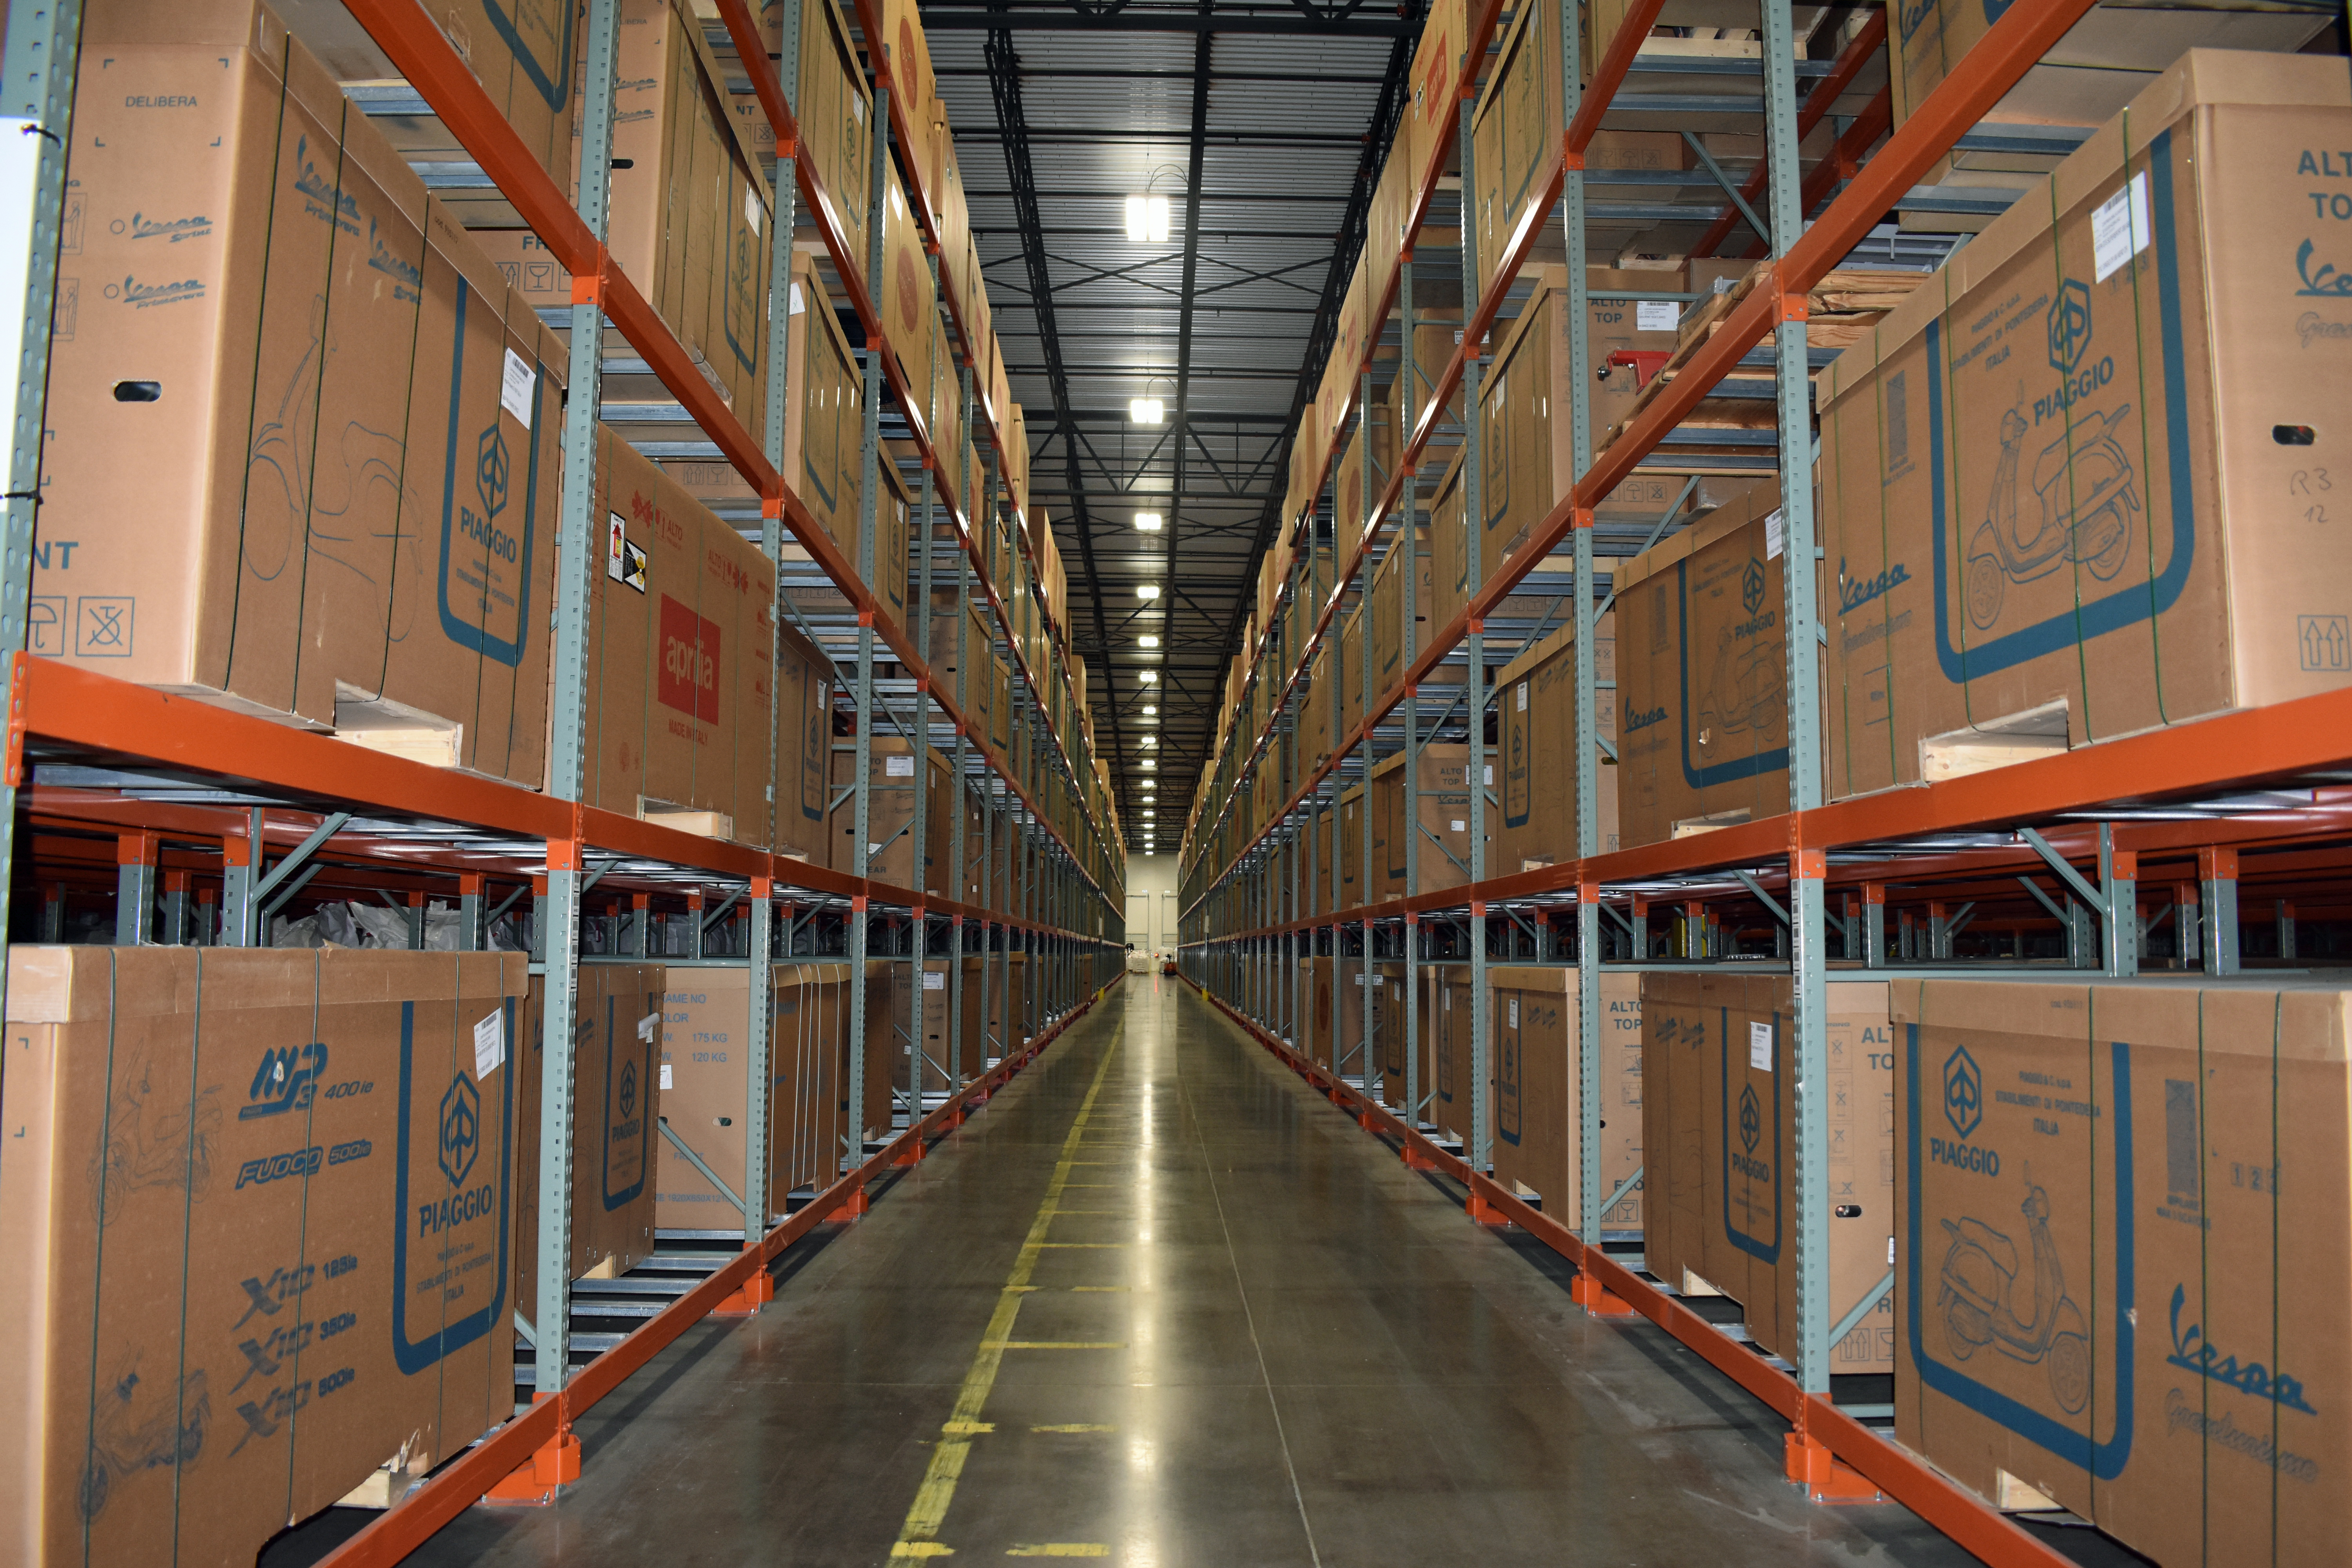 The Shippers Group Wintergreen facility stacked from floor to ceiling with uniform boxes of product neatly arranged in rows on racks